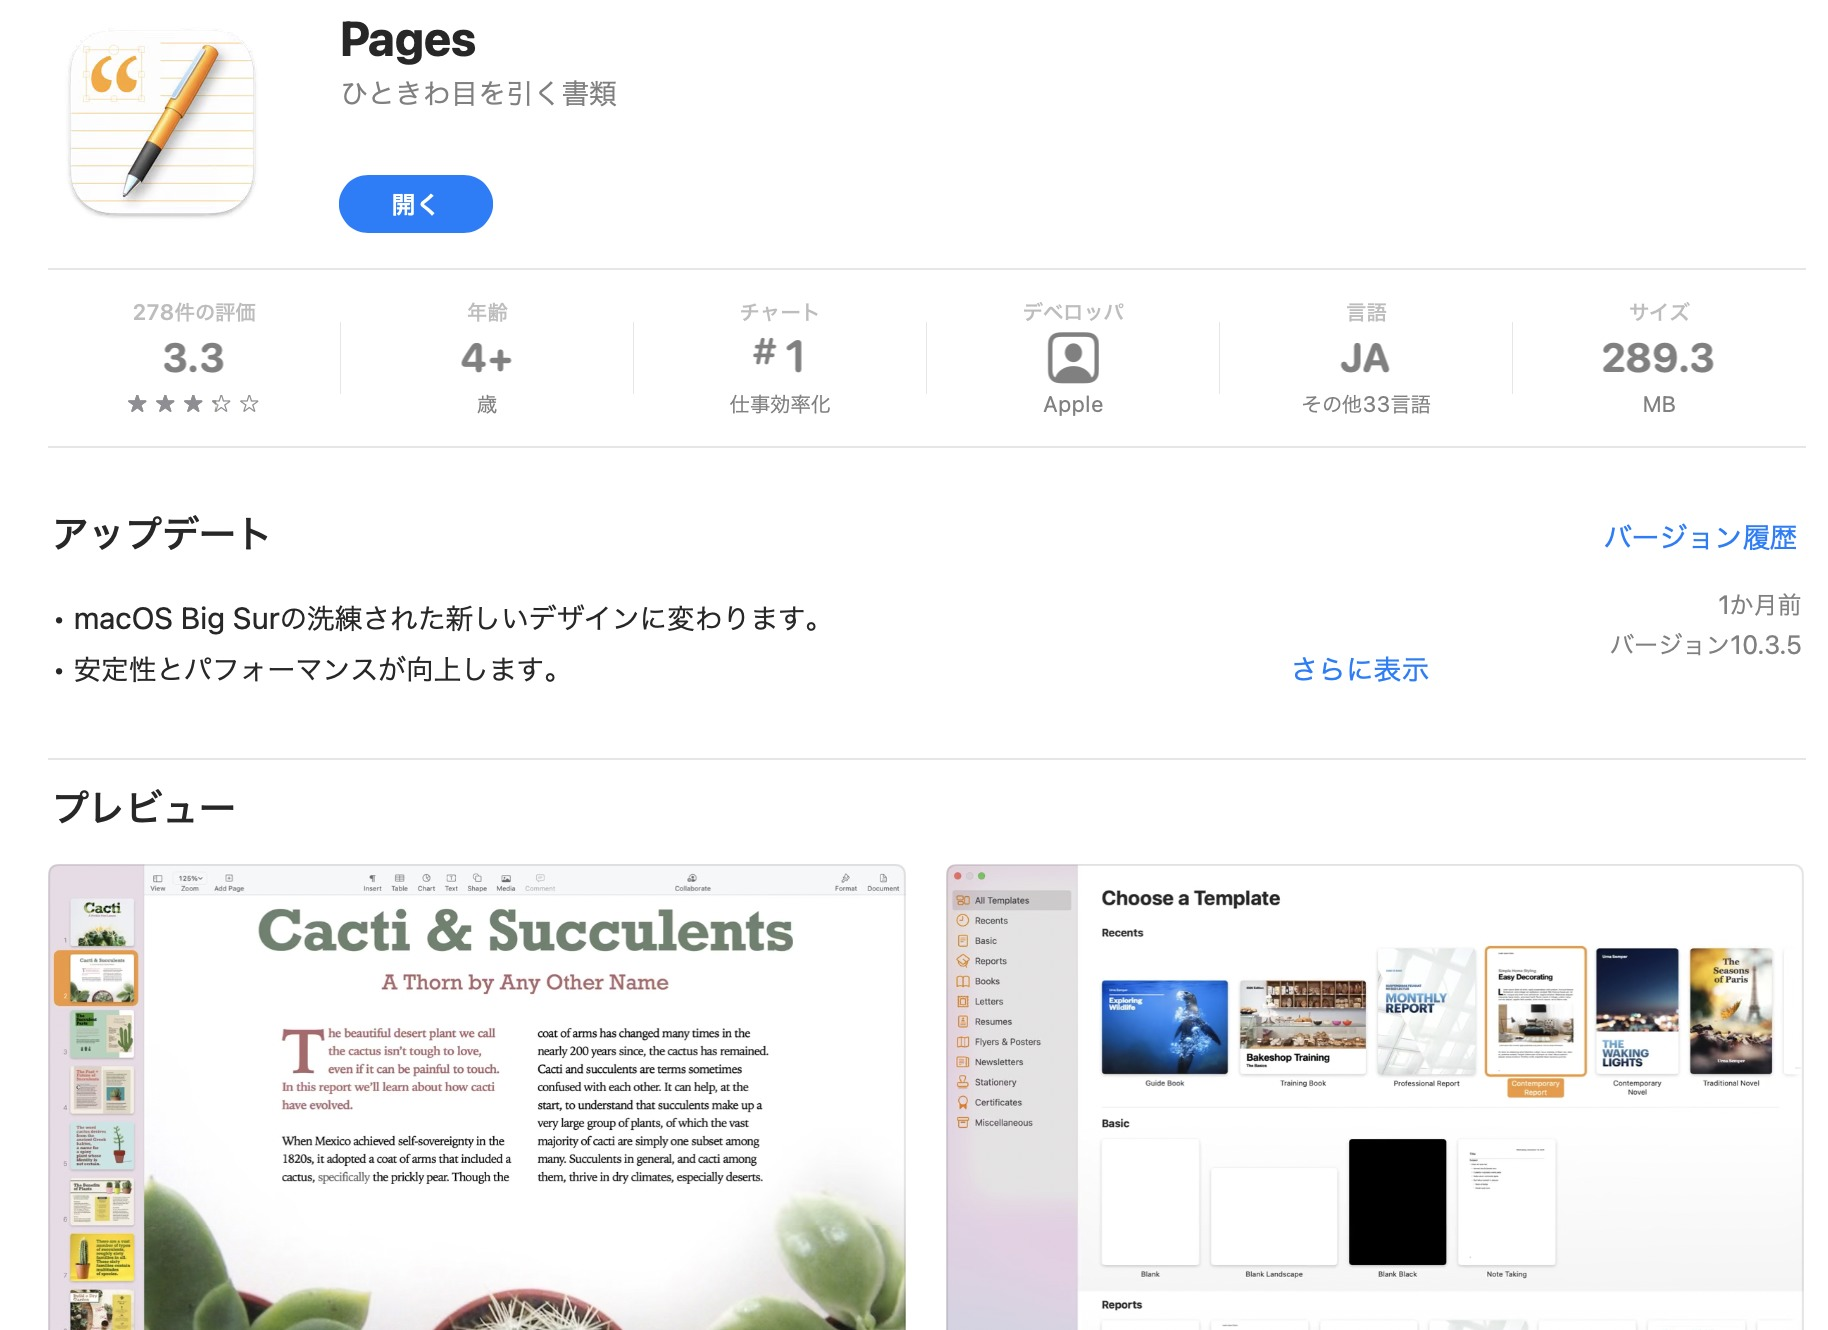 Kindle出版 Pages